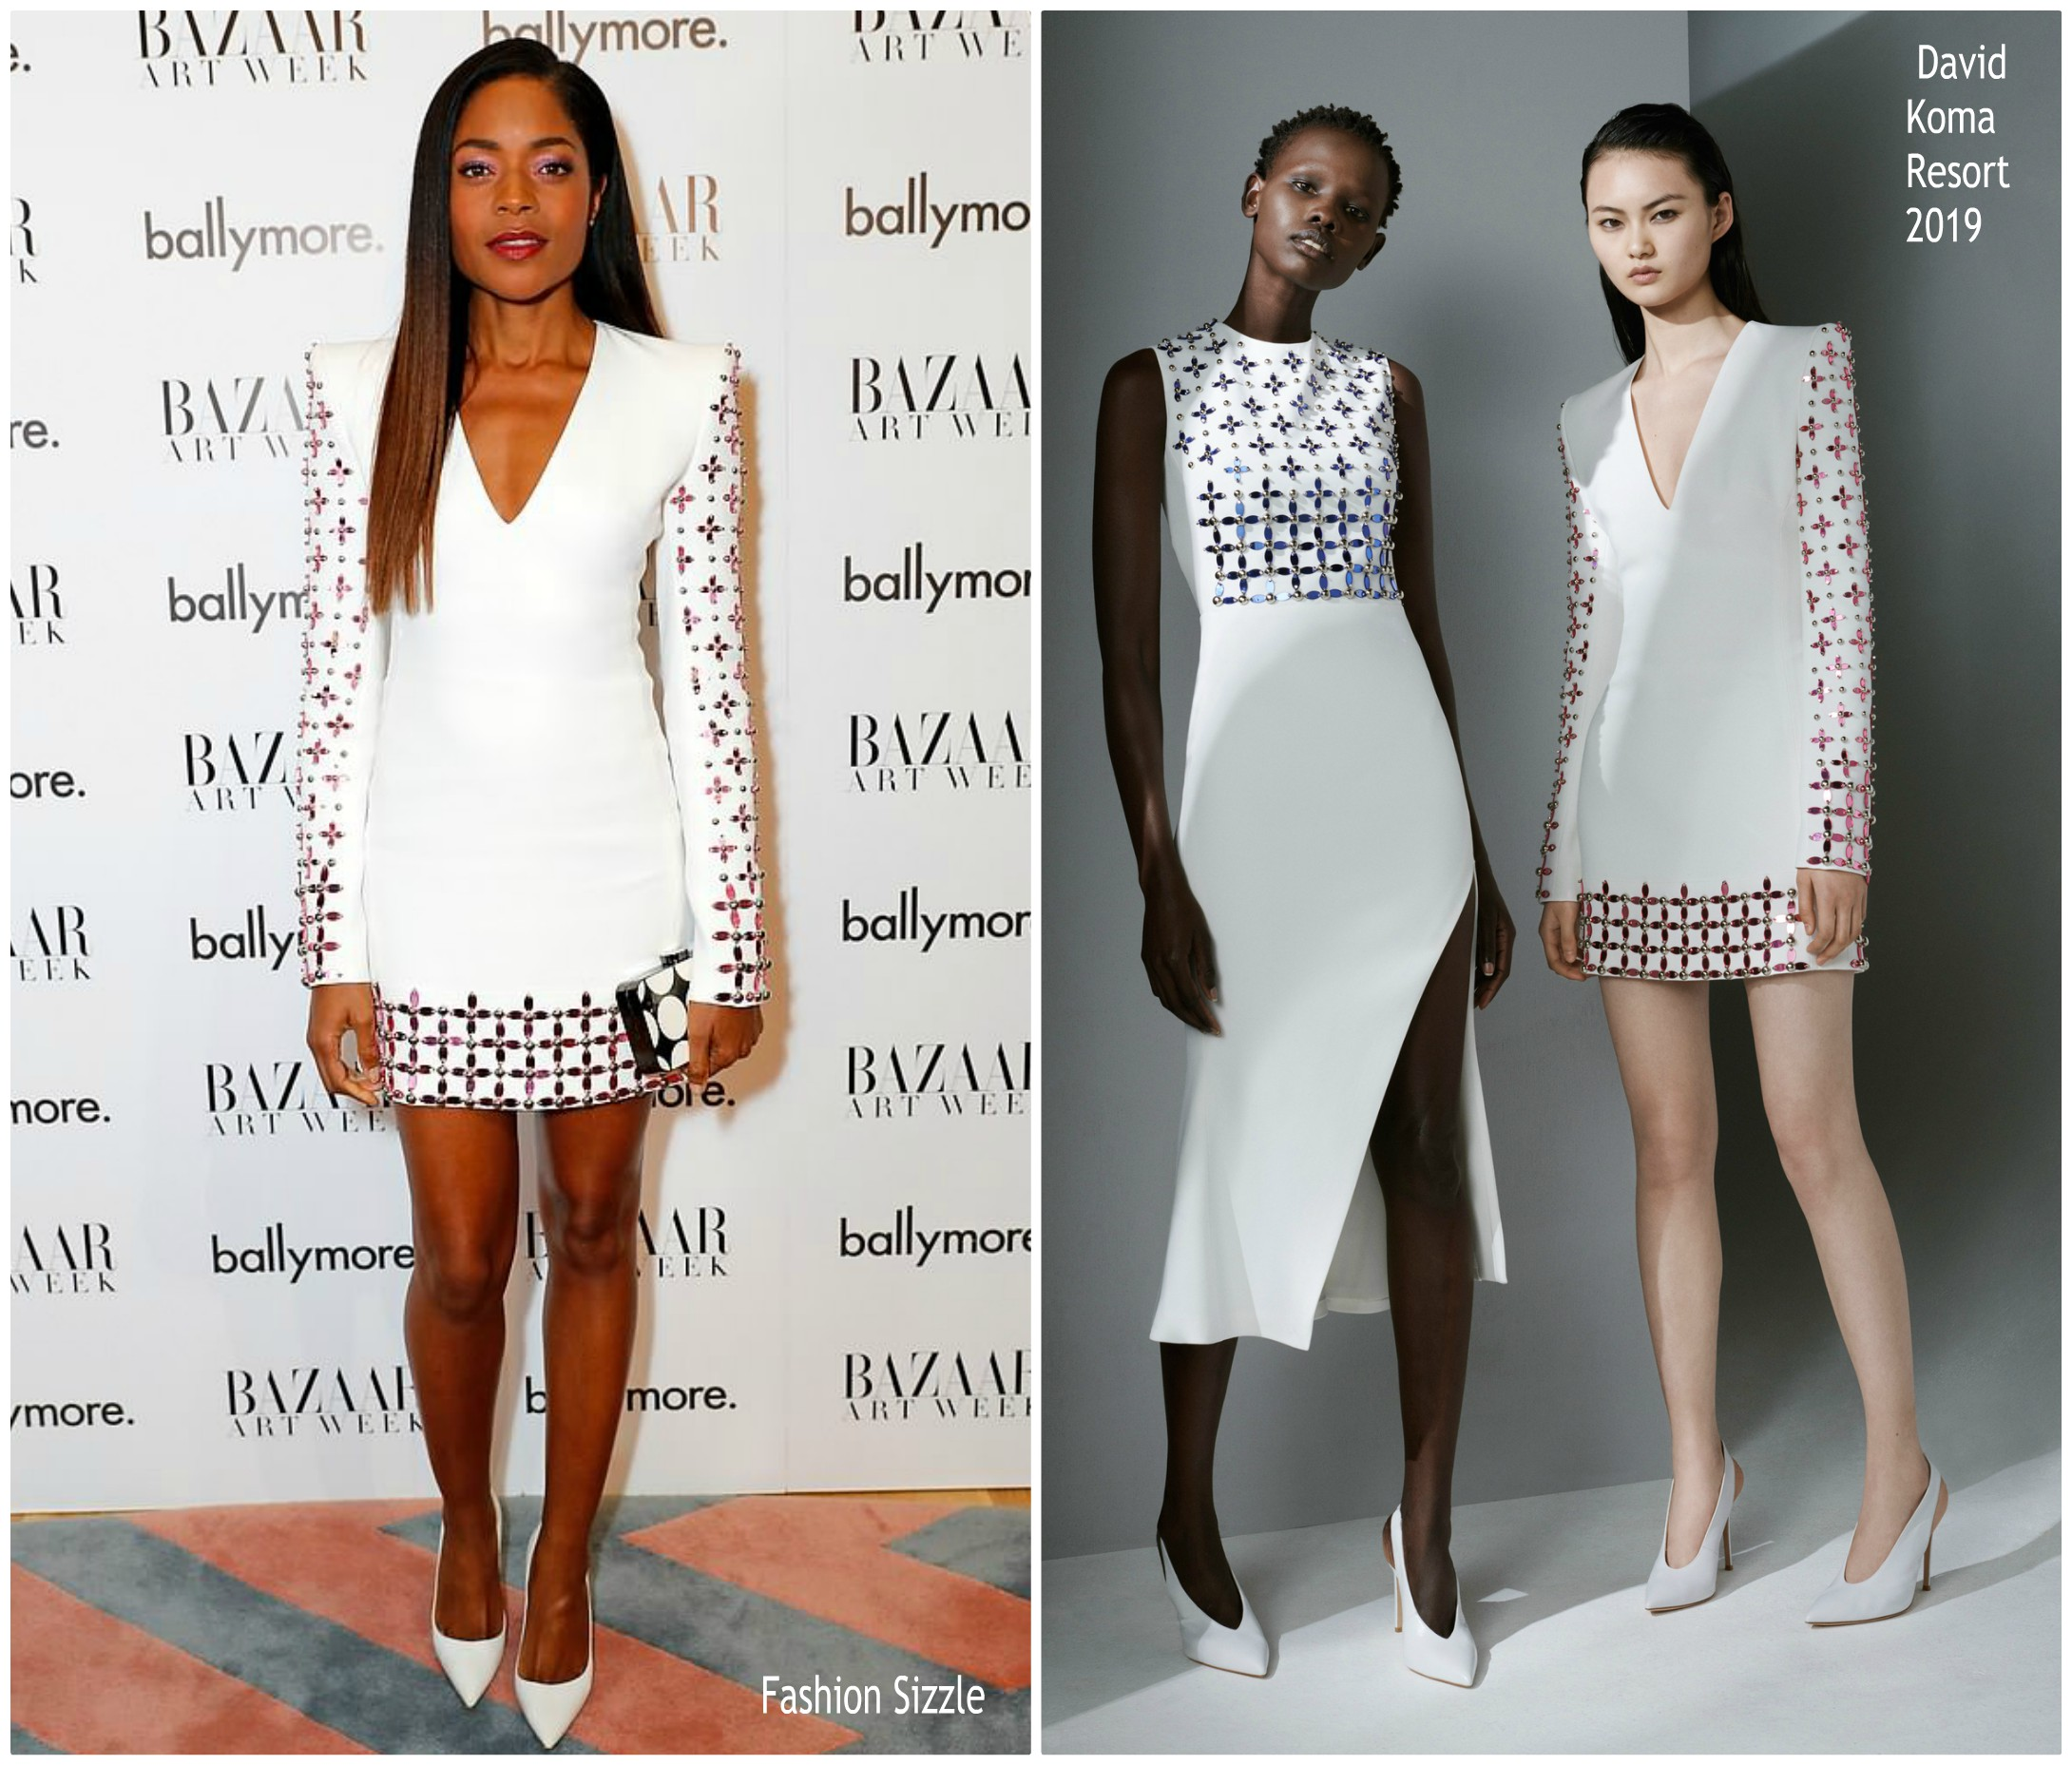 naomie-harris-in-david-koma-guggi-sculpture-unveiling-event